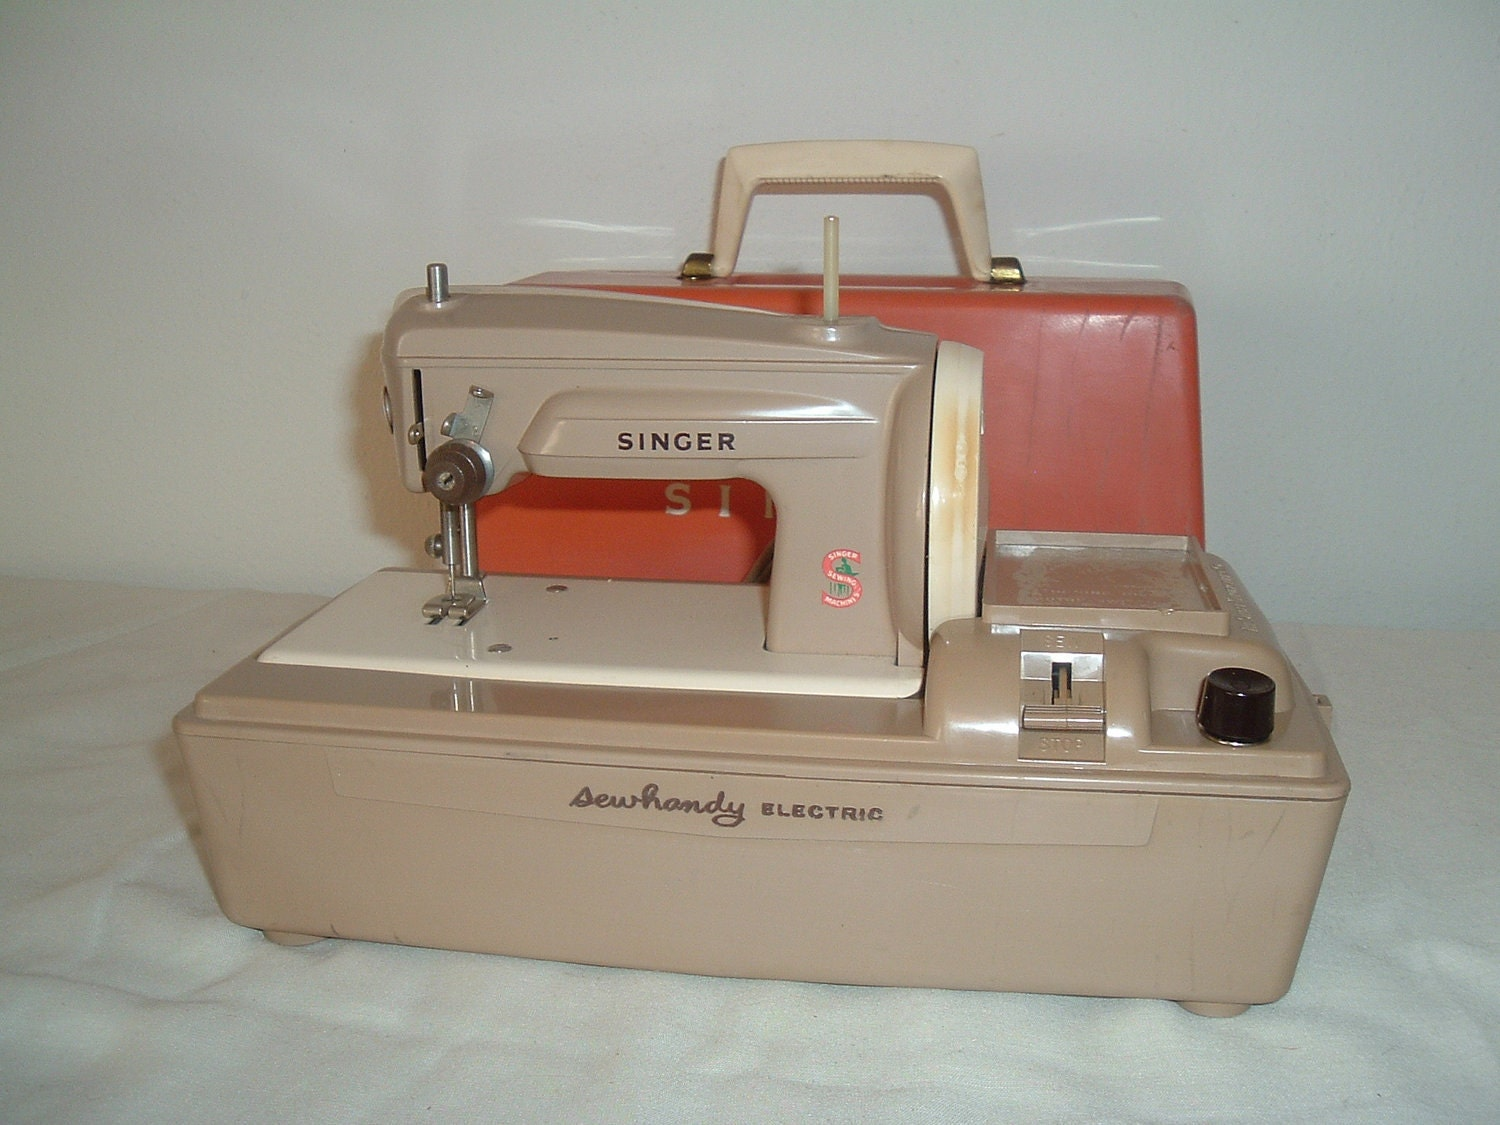 Electrical Sewing Machine : Vintage singer sew handy electric sewing machine